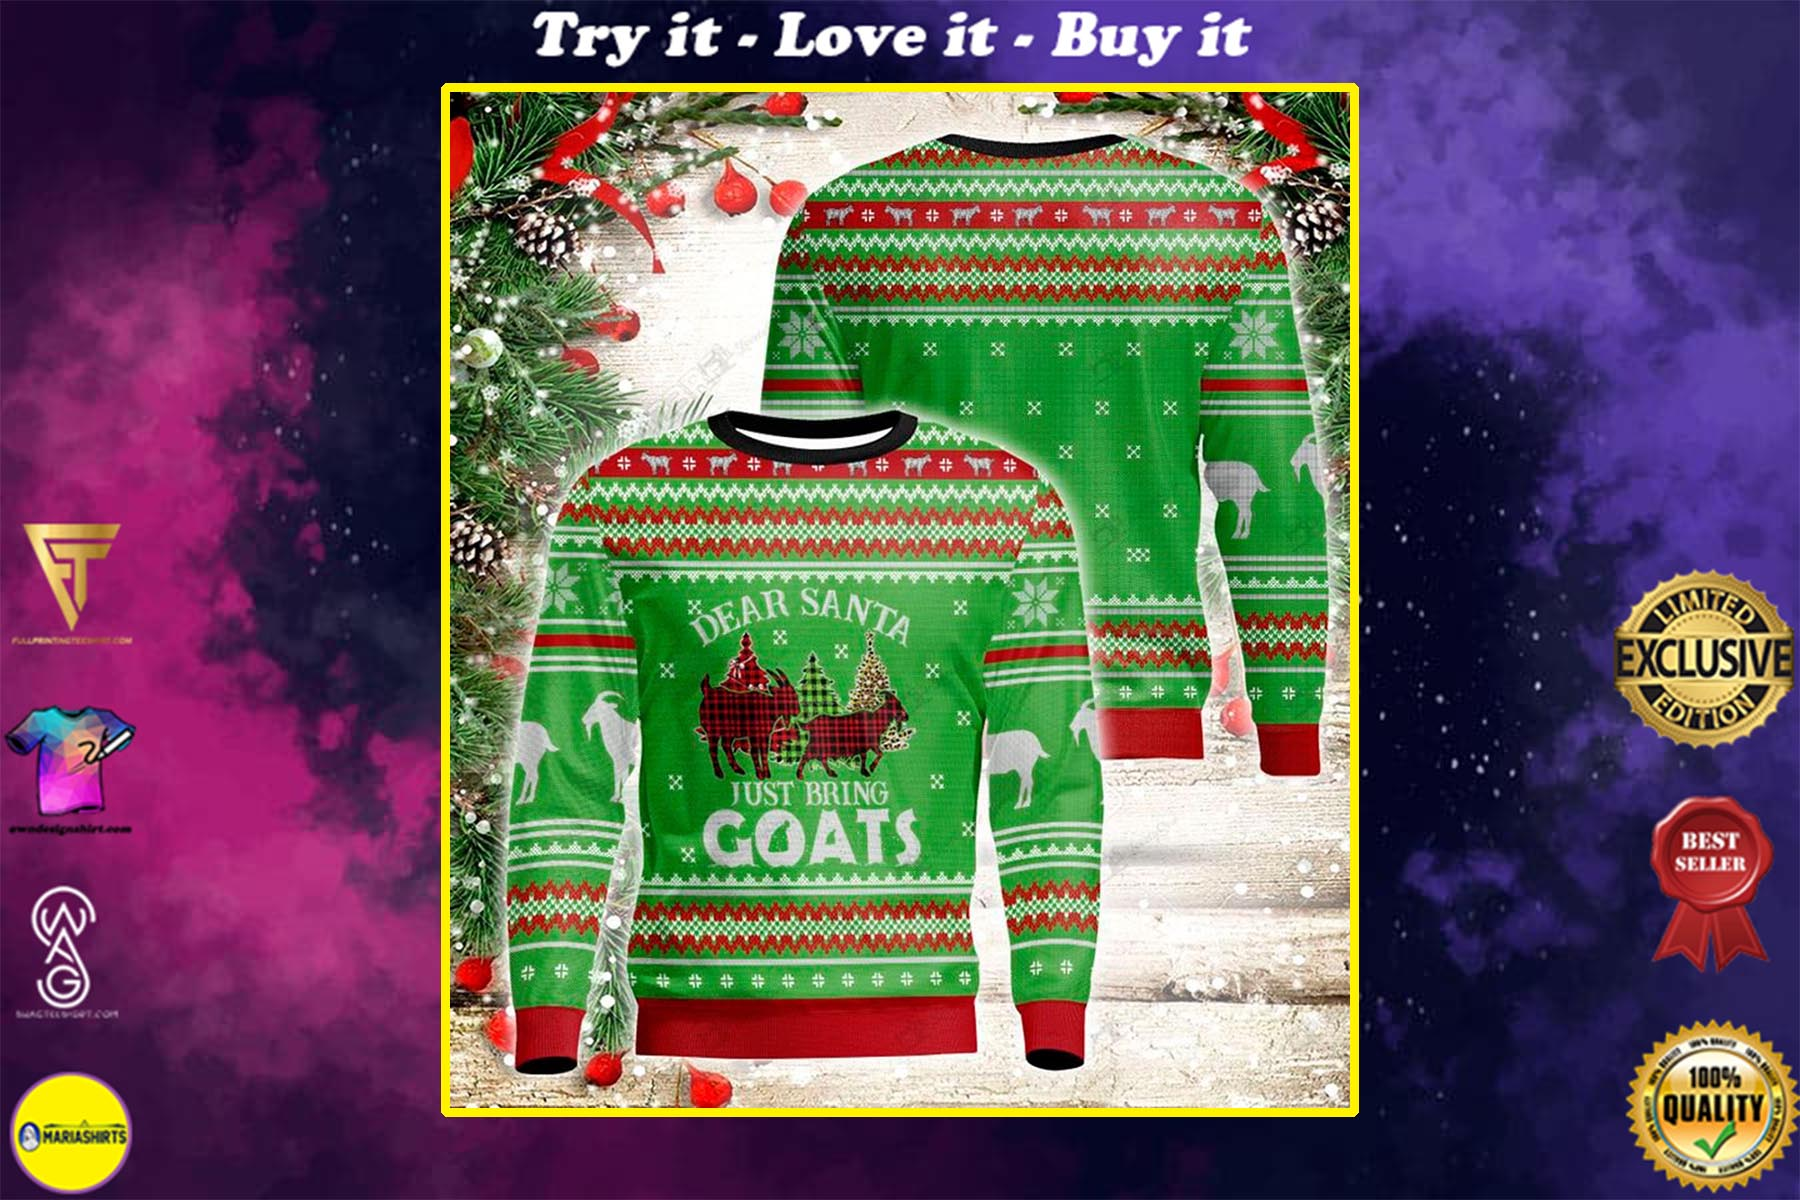 [special edition] dear santa just bring goats all over printed ugly christmas sweater - maria